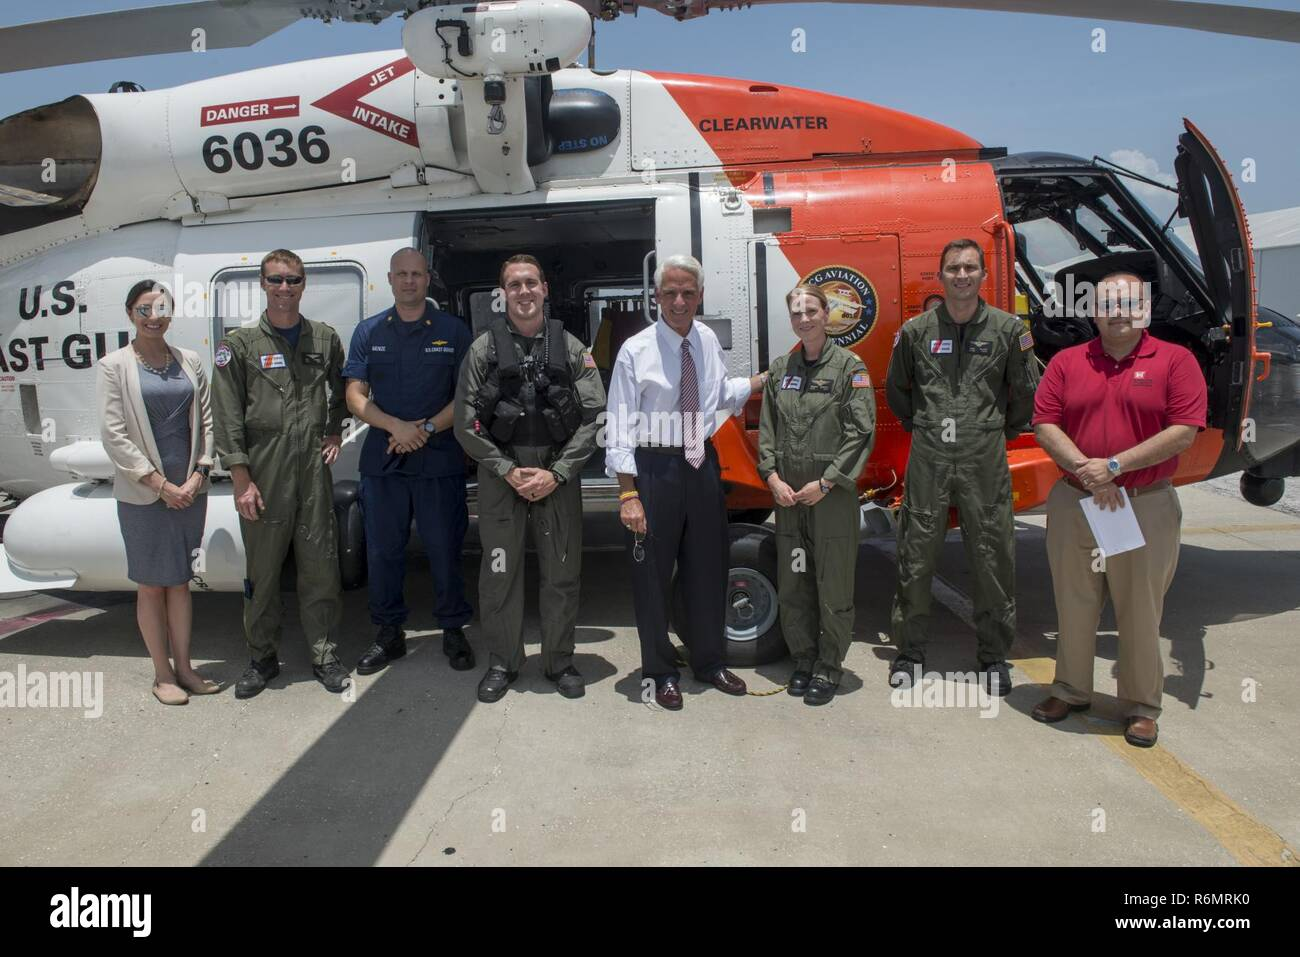 Congressman Charlie Crist, U.S. Representative for Florida's 13th District, center, meets with Air Station Clearwater crew members for a group photo Tuesday, May 30, 2017, prior to an aerial assessment of beach erosion along Pinellas County, Florida's coast. Coast Guard Air Station Clearwater MH-60 Jayhawk helicopter crew members provided the overflight for the congressman and Army Corps of Engineers personnel. - Stock Image